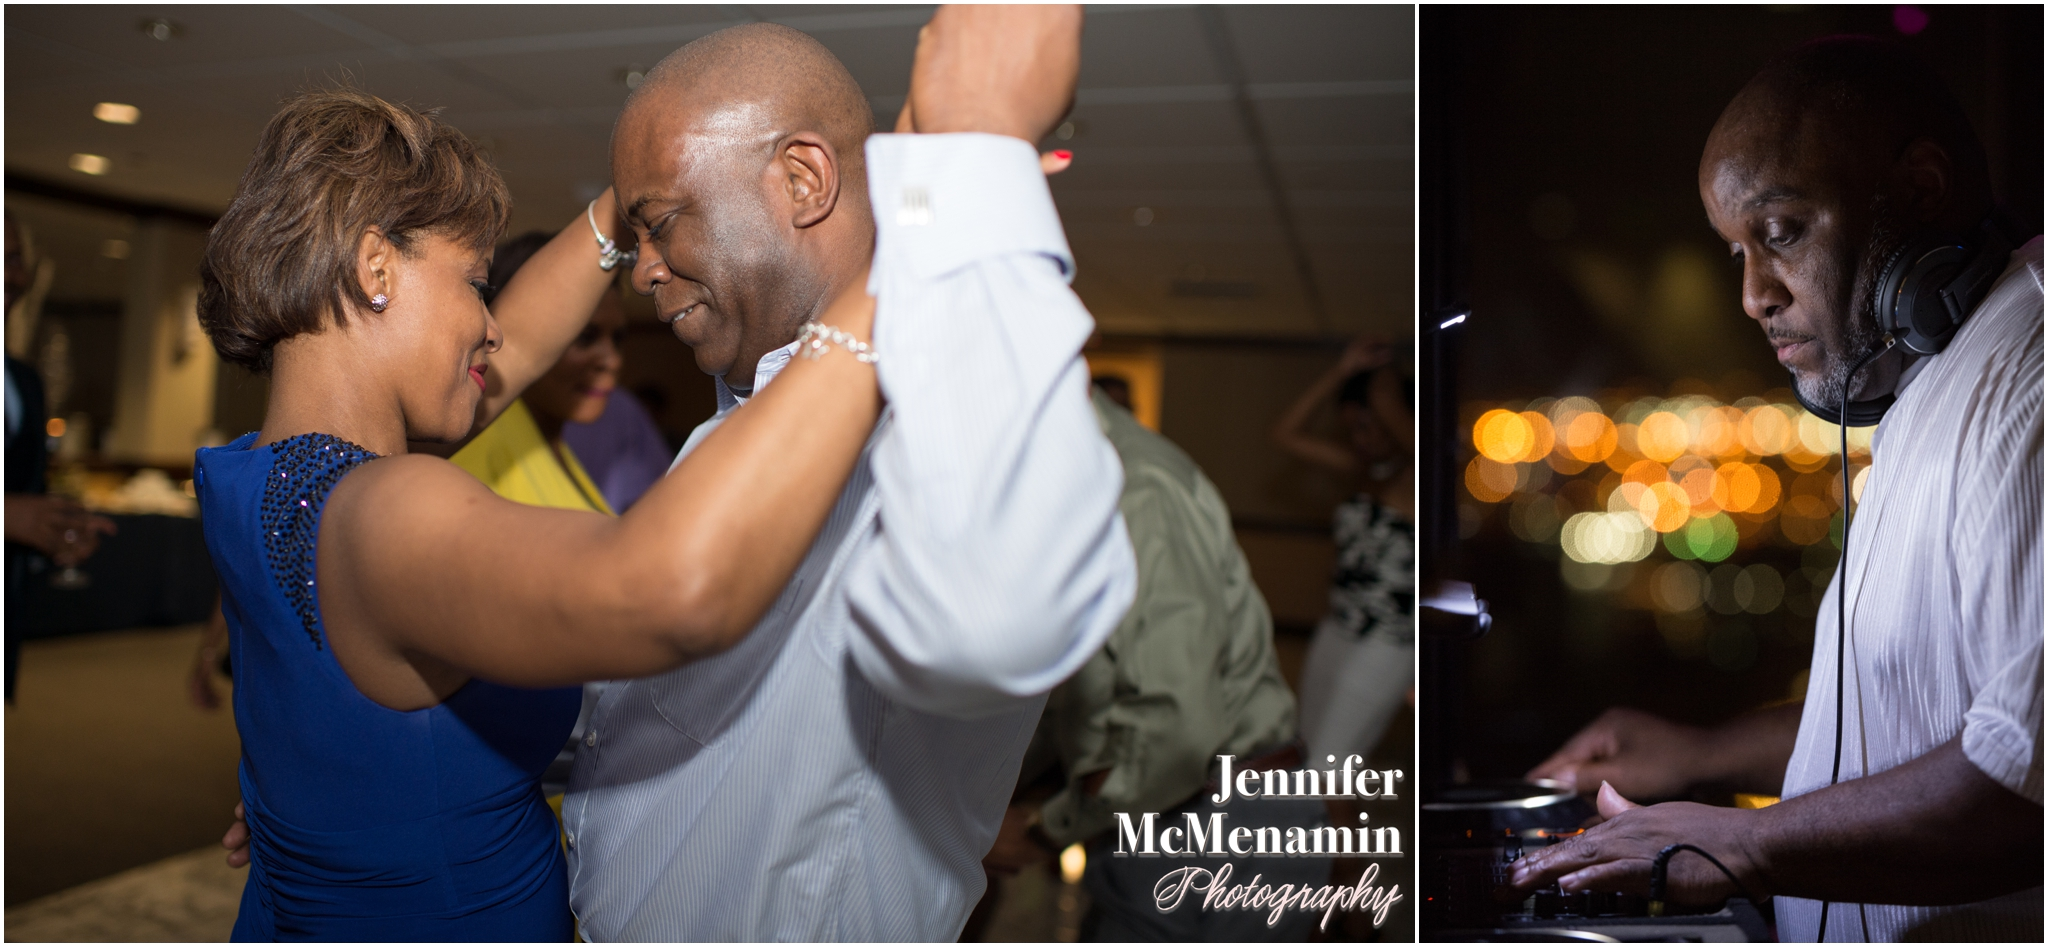 12-Saunders50th_01118-0316_JenniferMcMenaminPhotography_BaltimoreWorldTradeCenter_BaltimoreEventPhotography